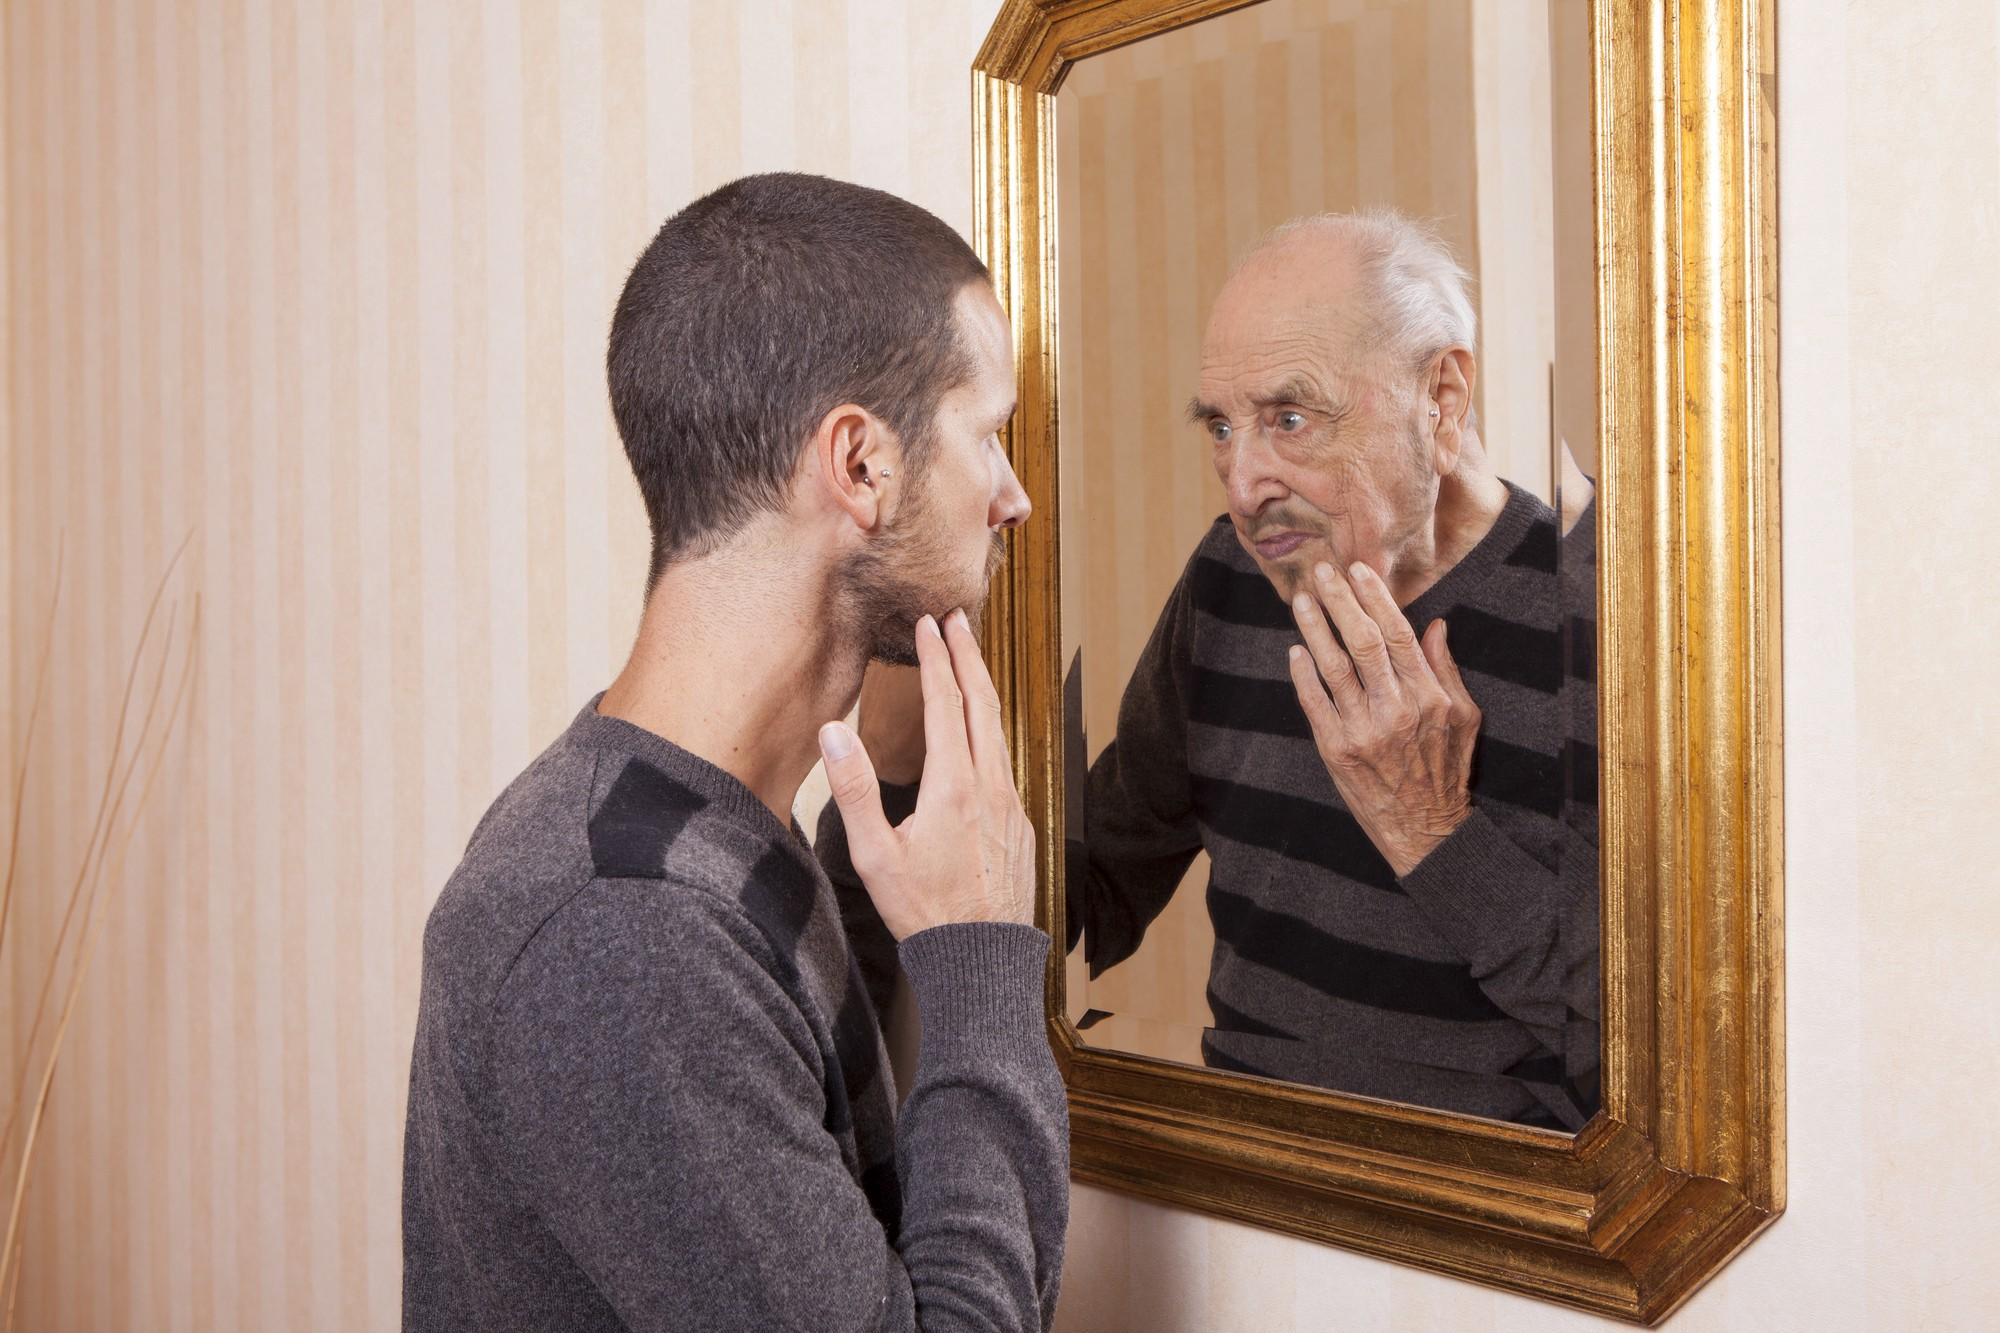 young man looking at reflection of older man in mirror